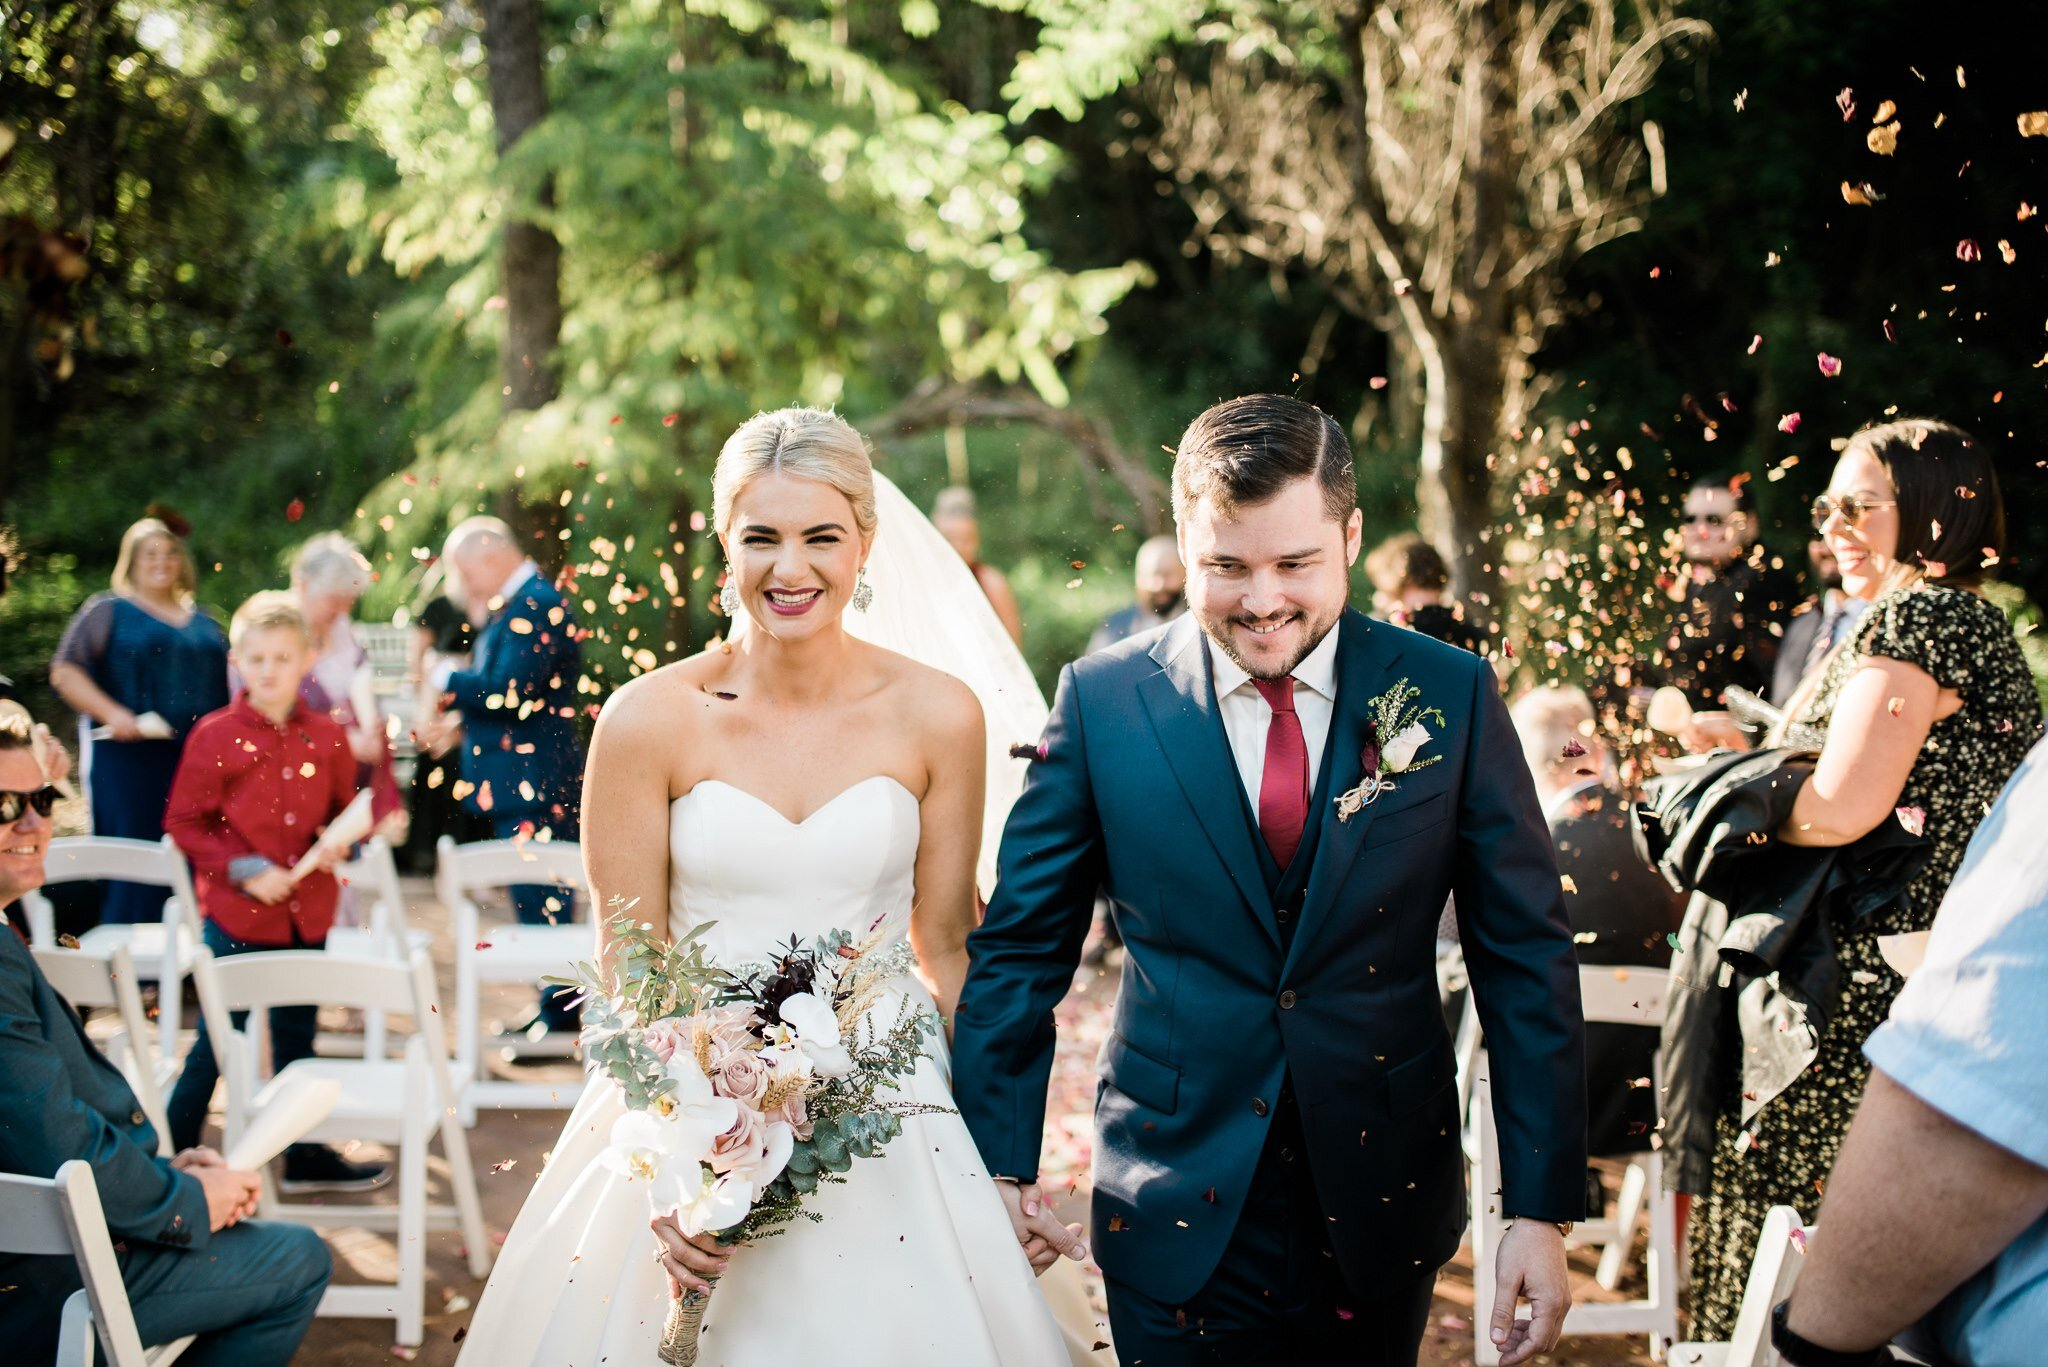 Bonnie and Tom, blissed out after their wedding ceremony at  Bundaleer Rainforest Gardens .